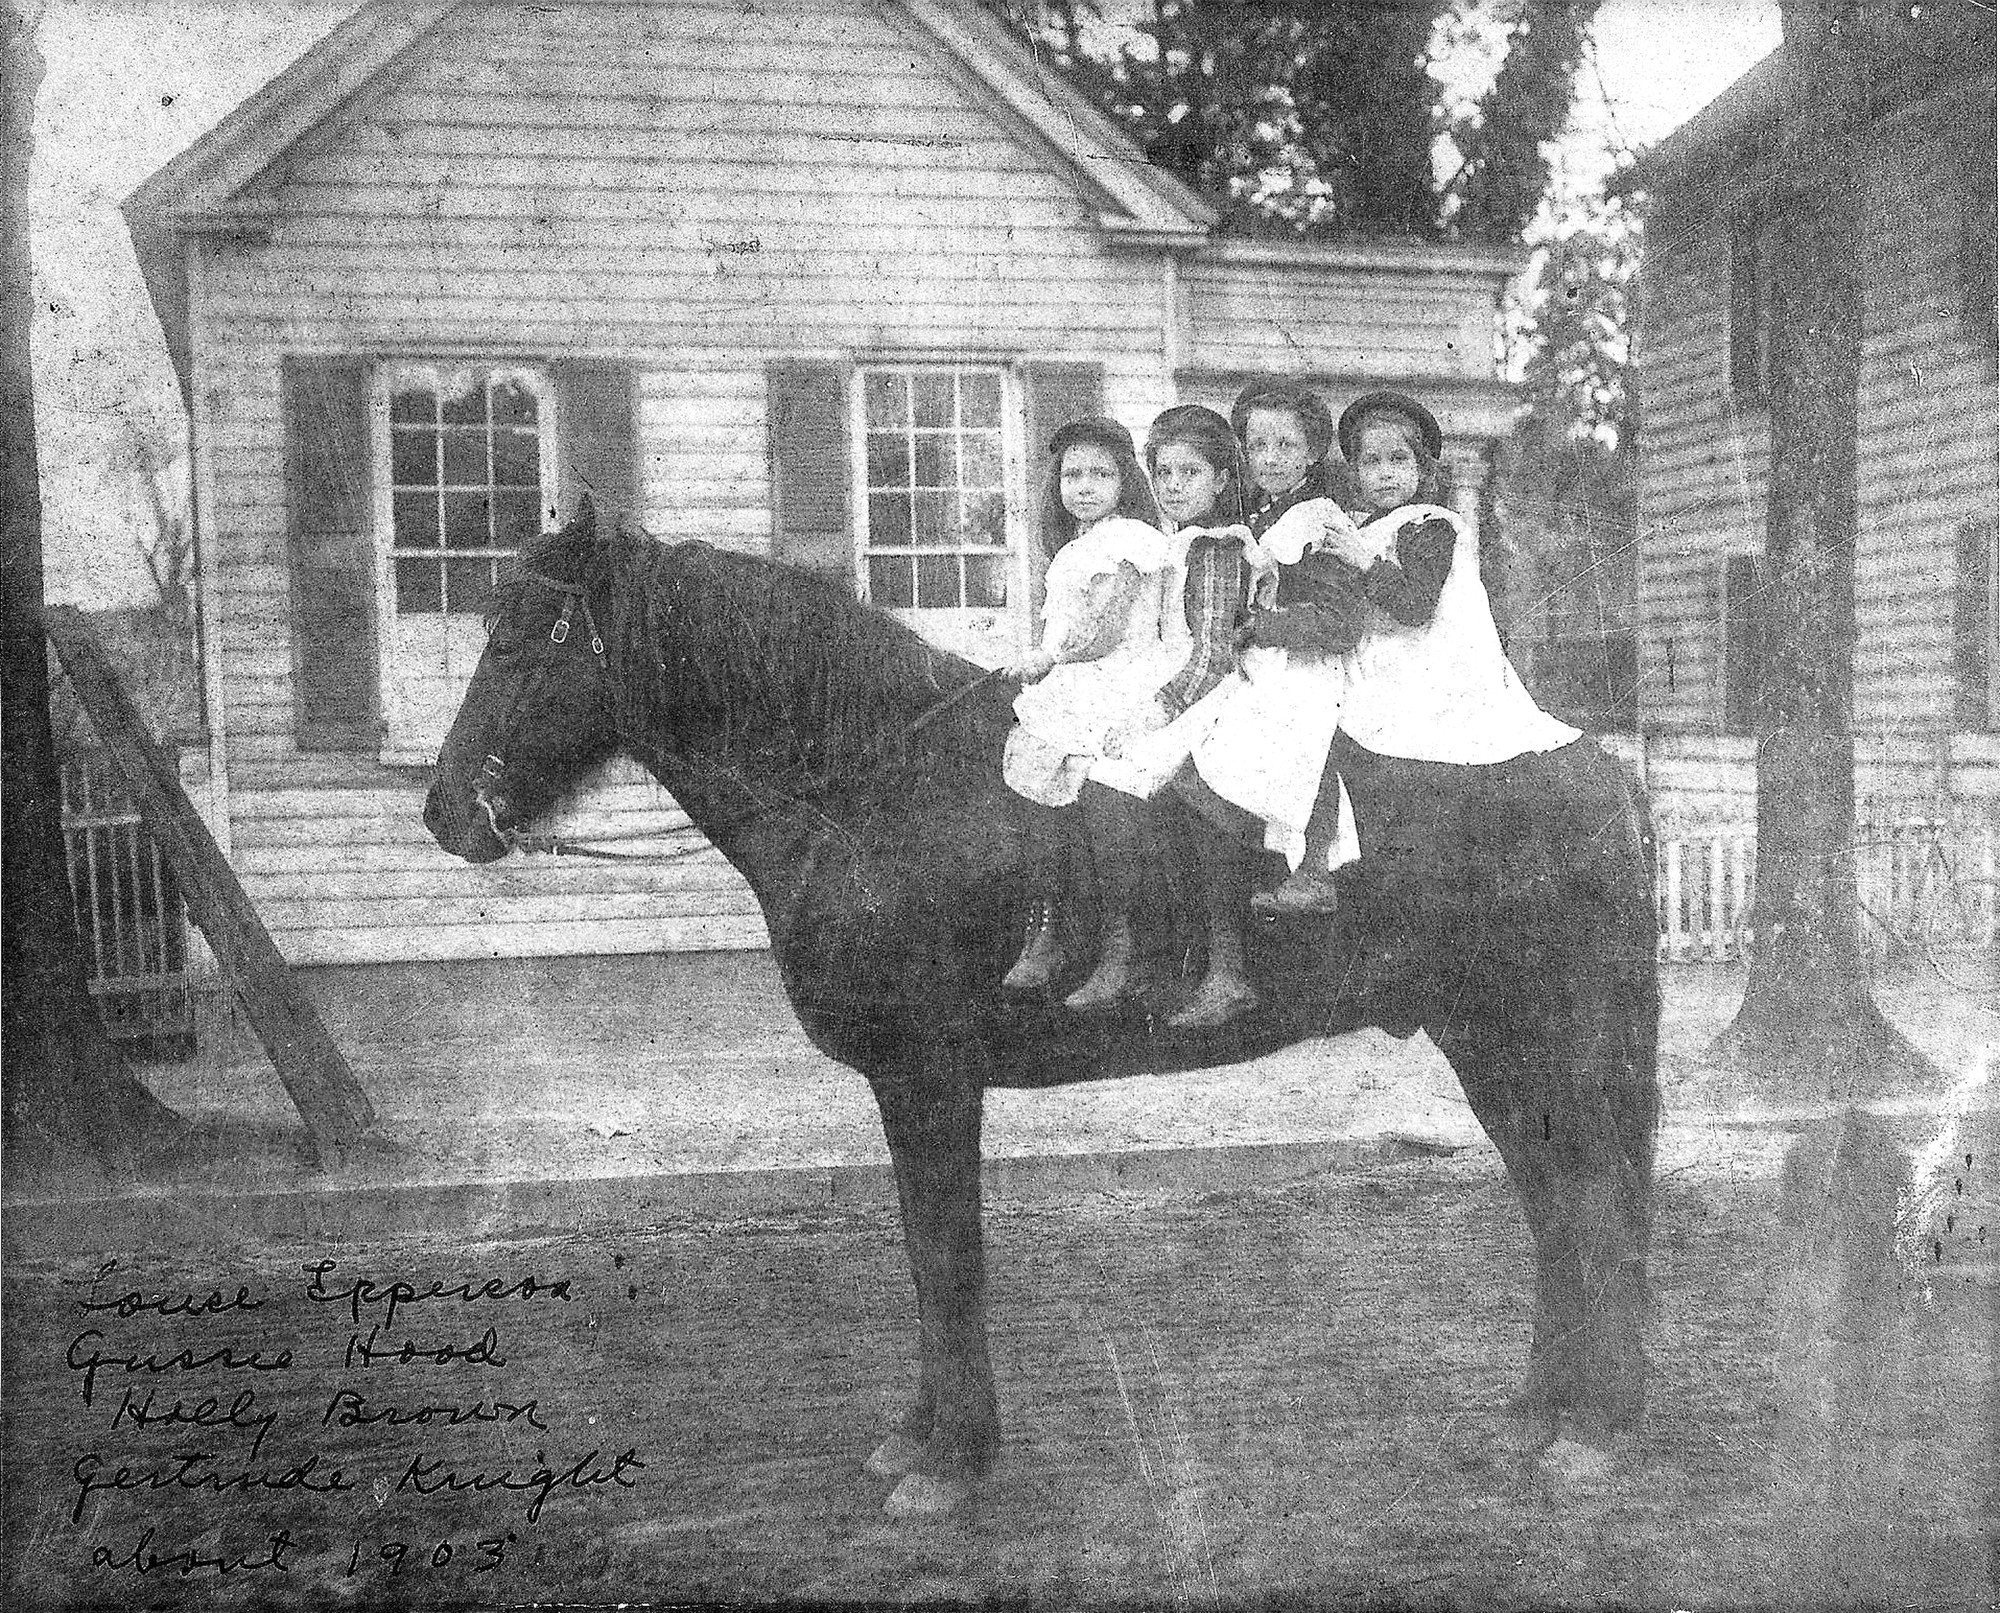 Louise Epperson, Gussie Hood, Holly Brown and Gertrude Knight ride a horse about 1903 in Sumter. The Haynsworth-Fraser Law Office is seen in the background at the southeast corner of Main Street at Law Range.